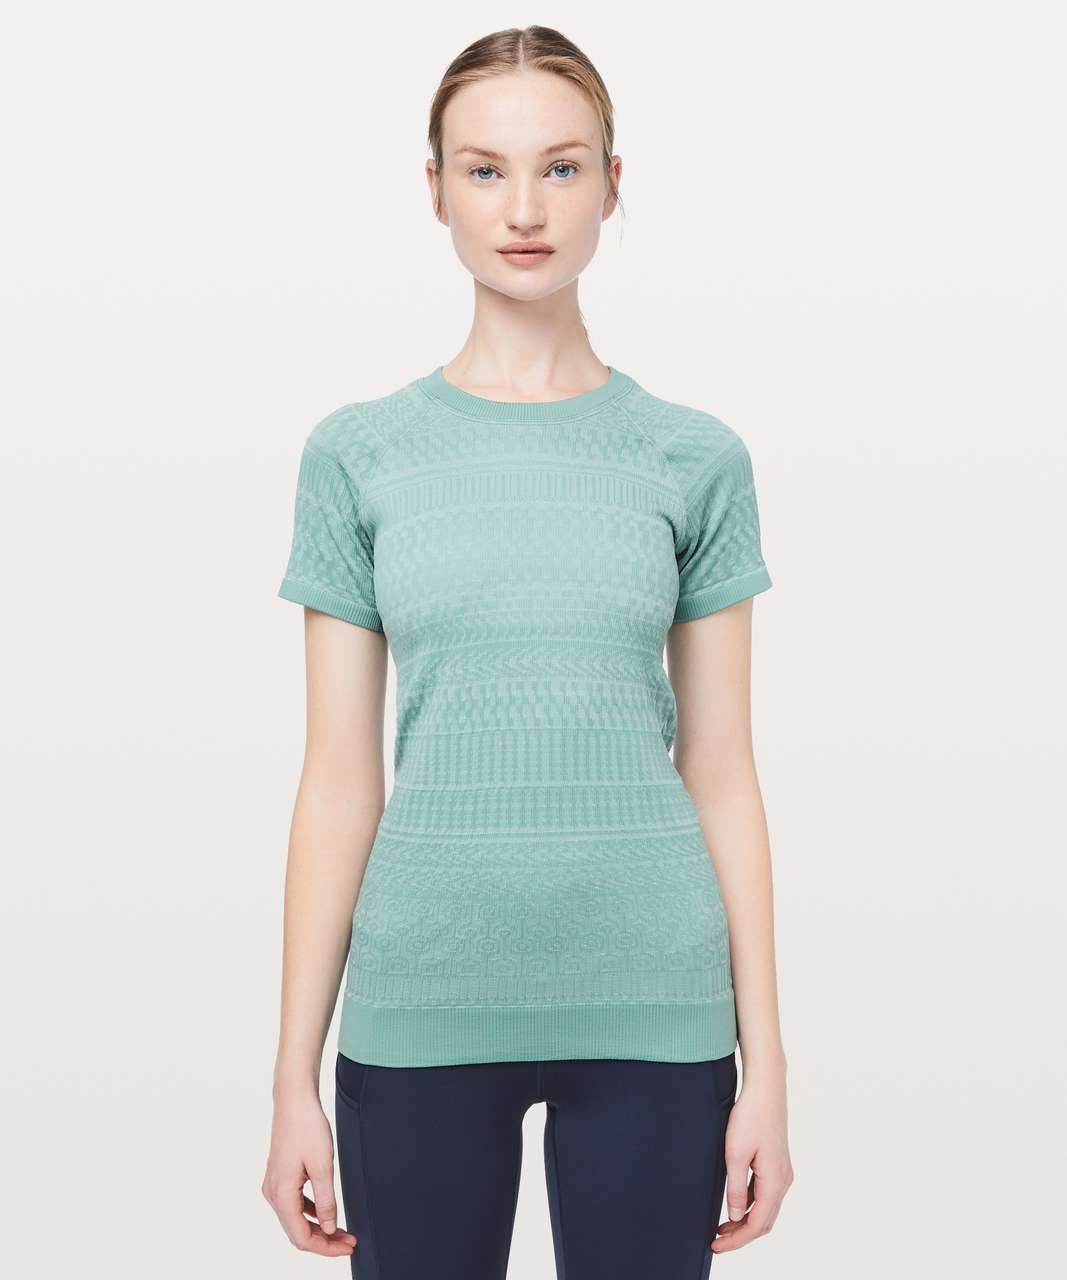 Lululemon Rest Less Short Sleeve - Frosted Pine / White